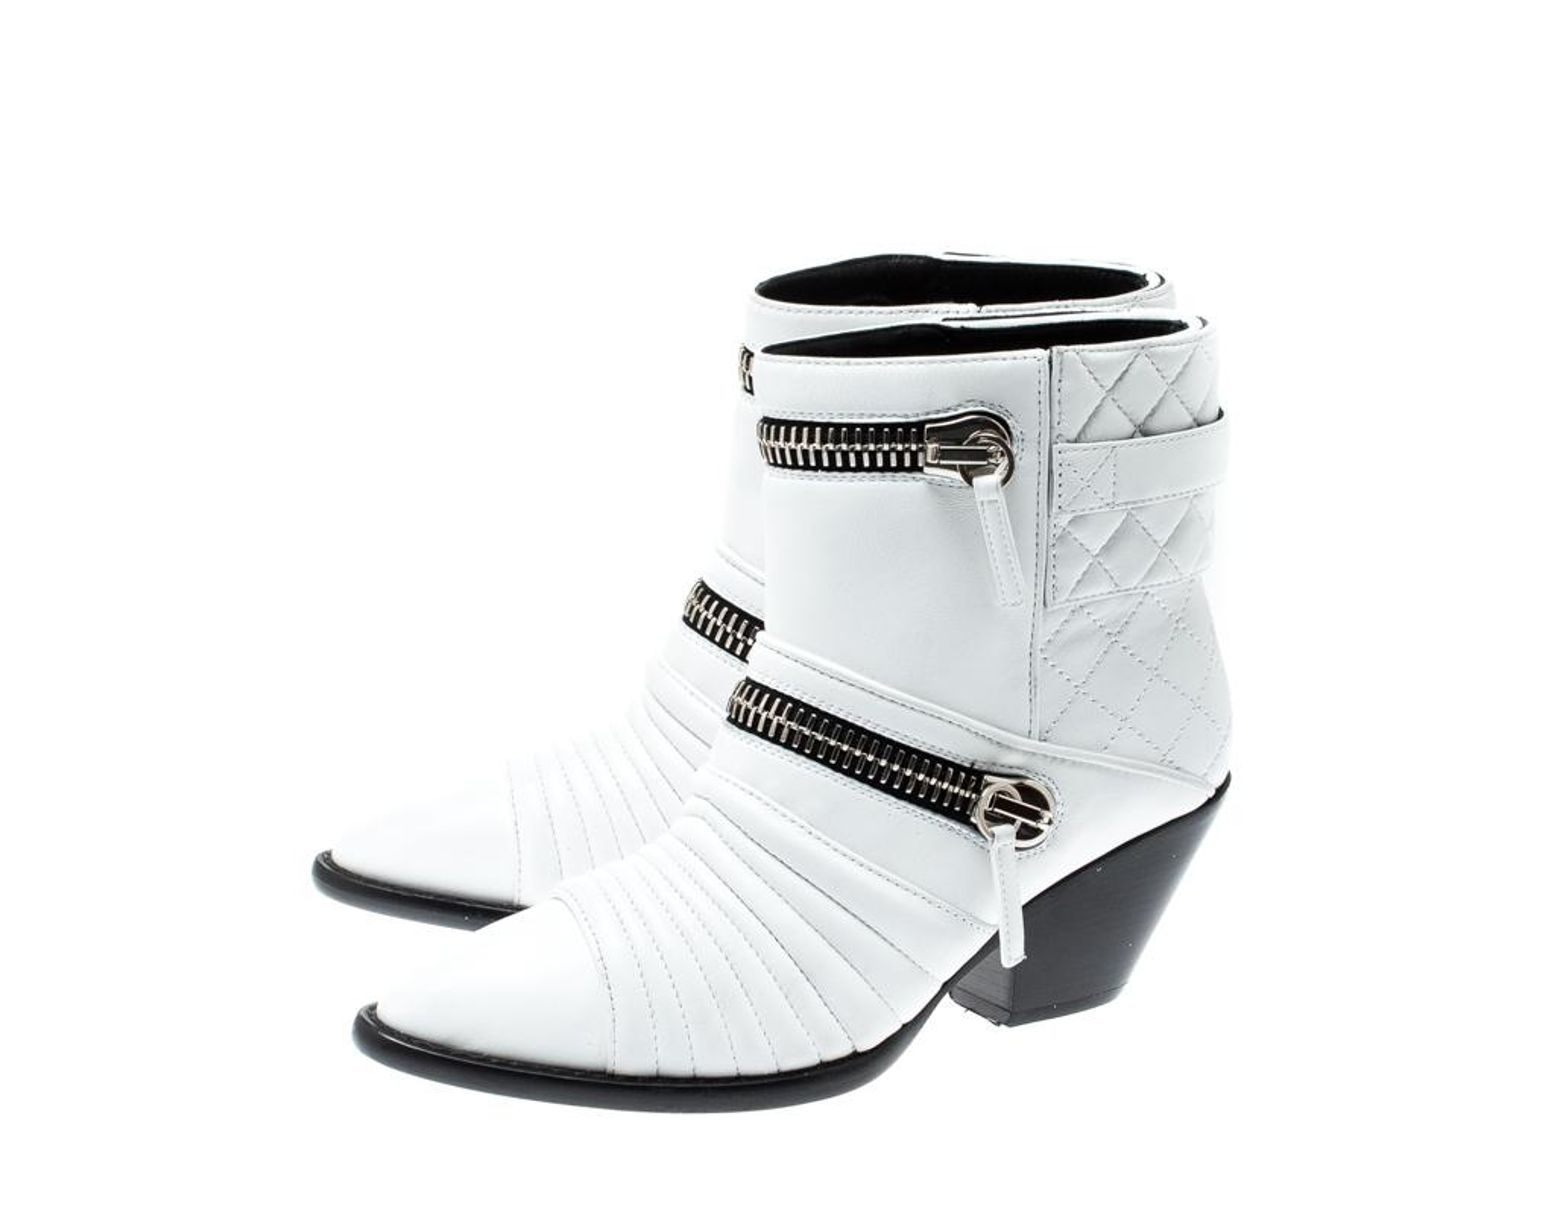 Women's White Quilted Leather Ankle Boots Size 38.5